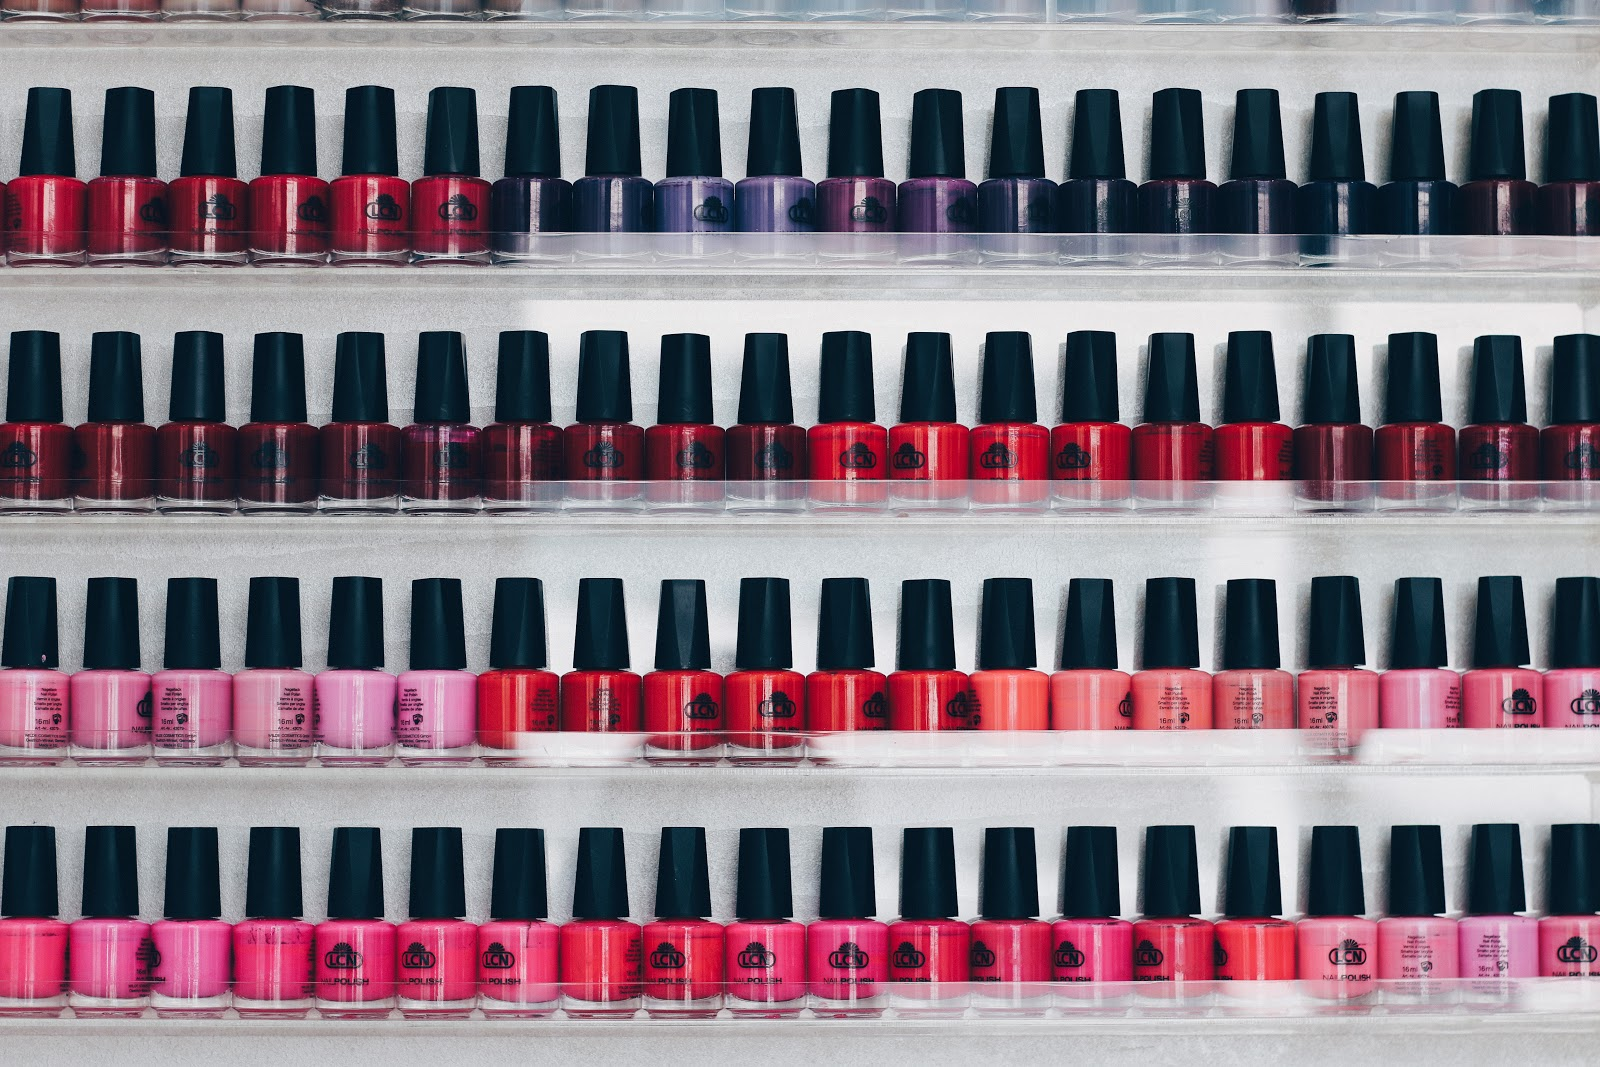 photo of nail polish